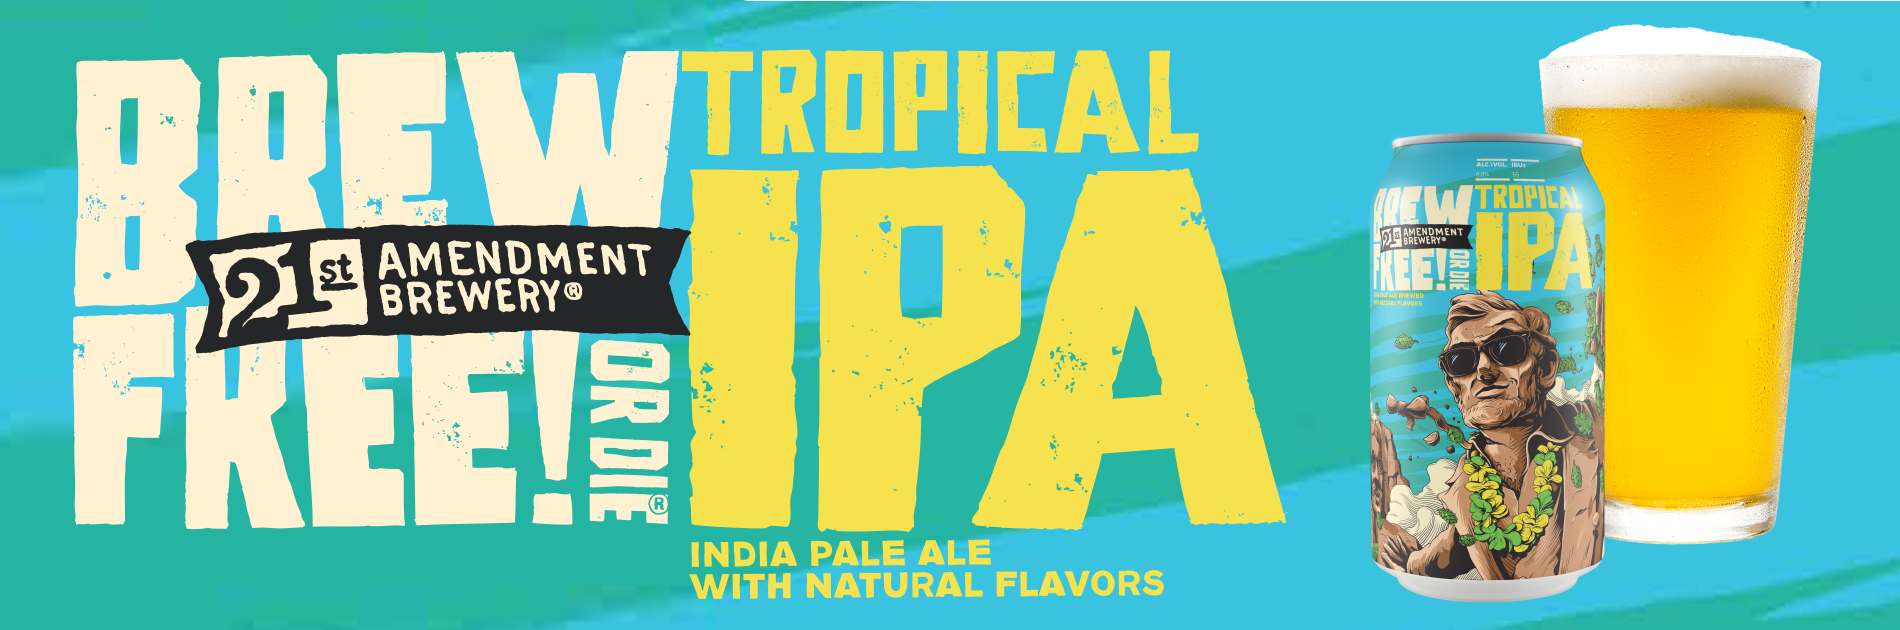 """21st Amendment Brewery Nationally Releases """"Tropical Brew Free! or Die IPA"""" For Summer 2021"""